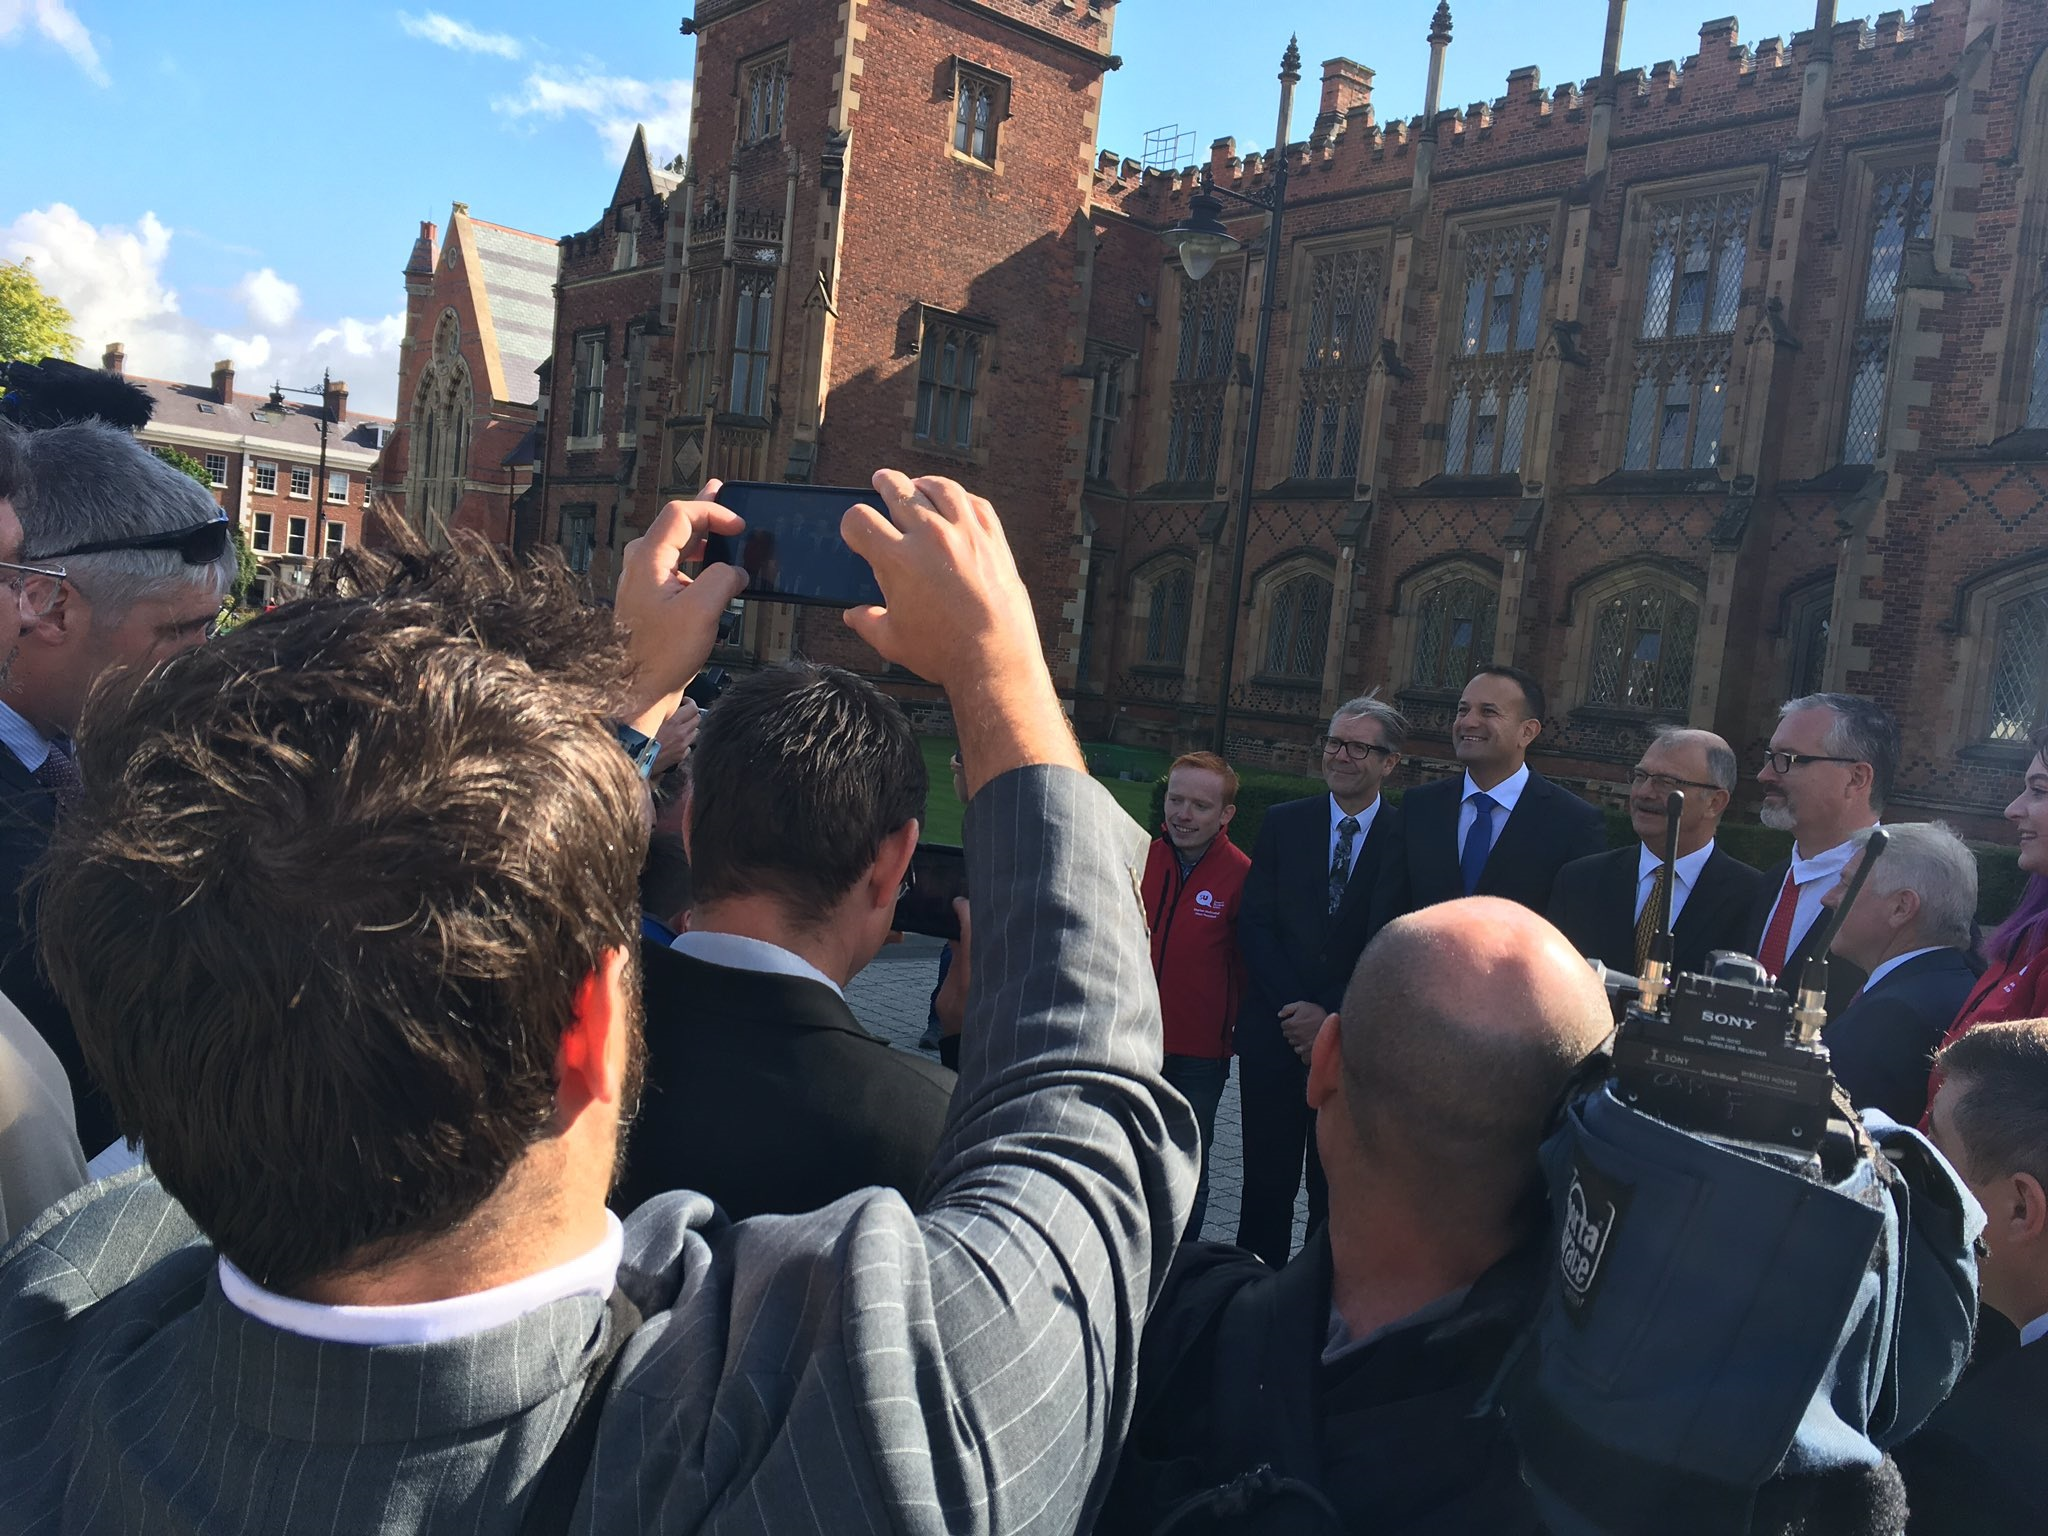 Republic of Ireland PM Leo Varadkar (2nd right) at Queen's University in Belfast.